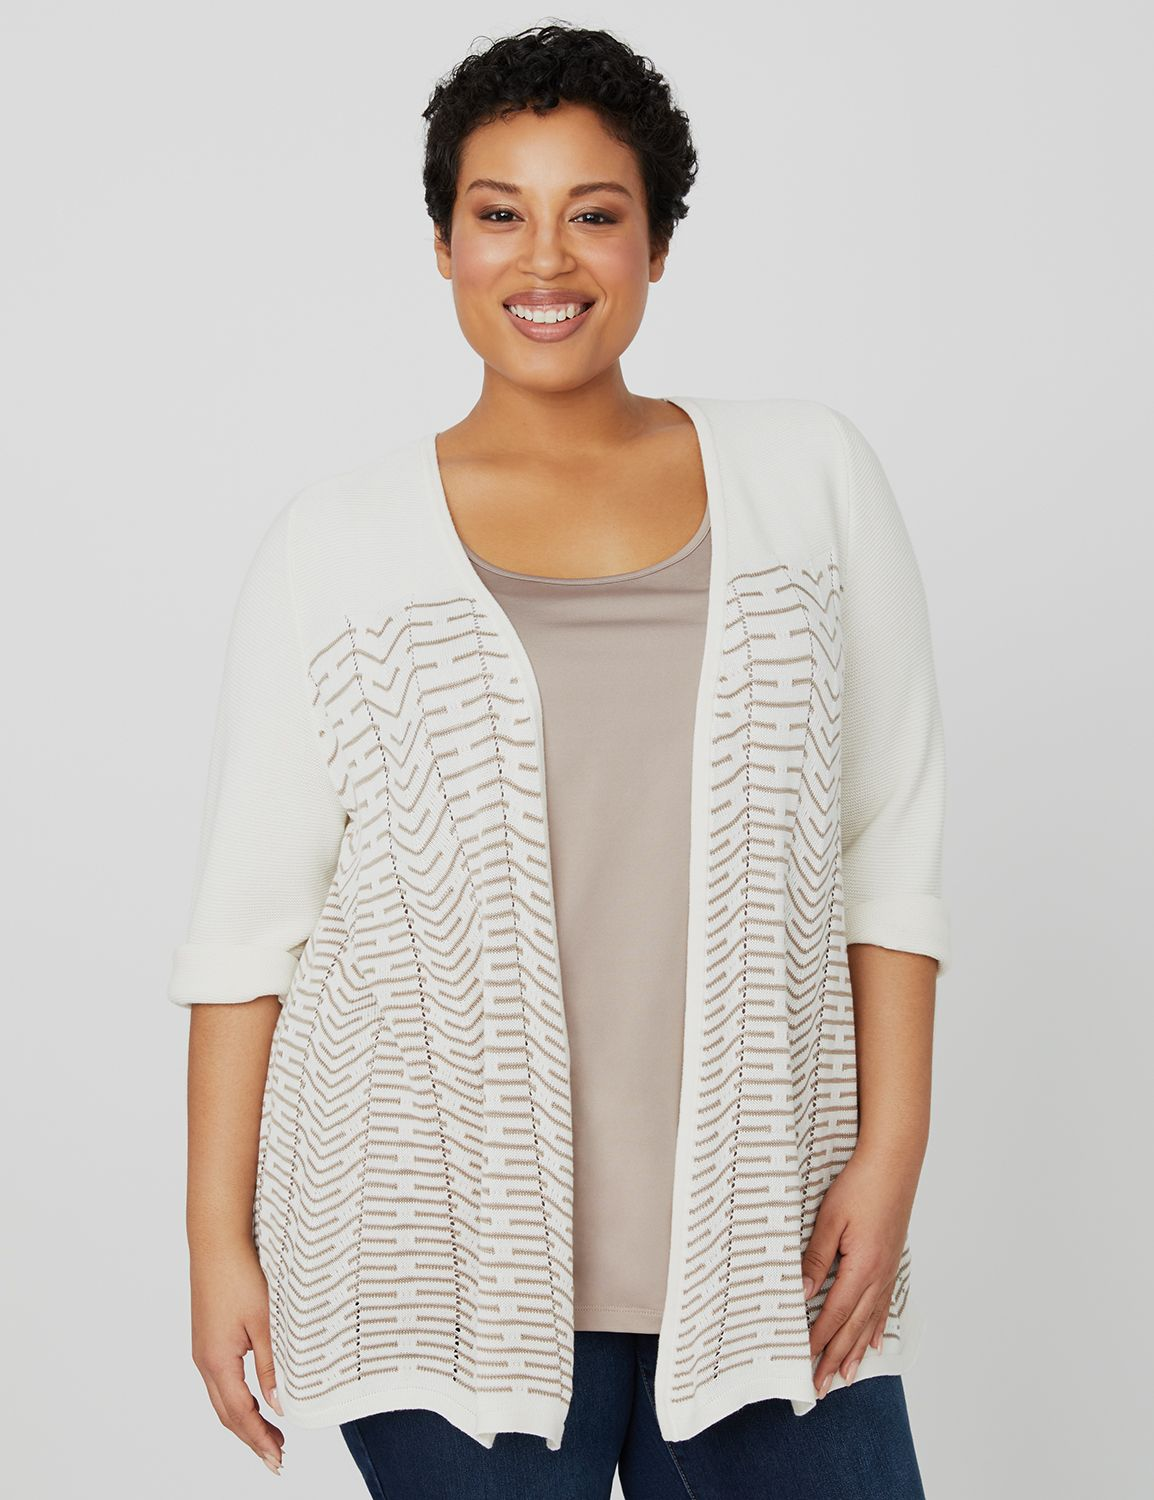 Peaceful Wave Cardigan 1087941 WaveStitch OpenCardi MP-300095847